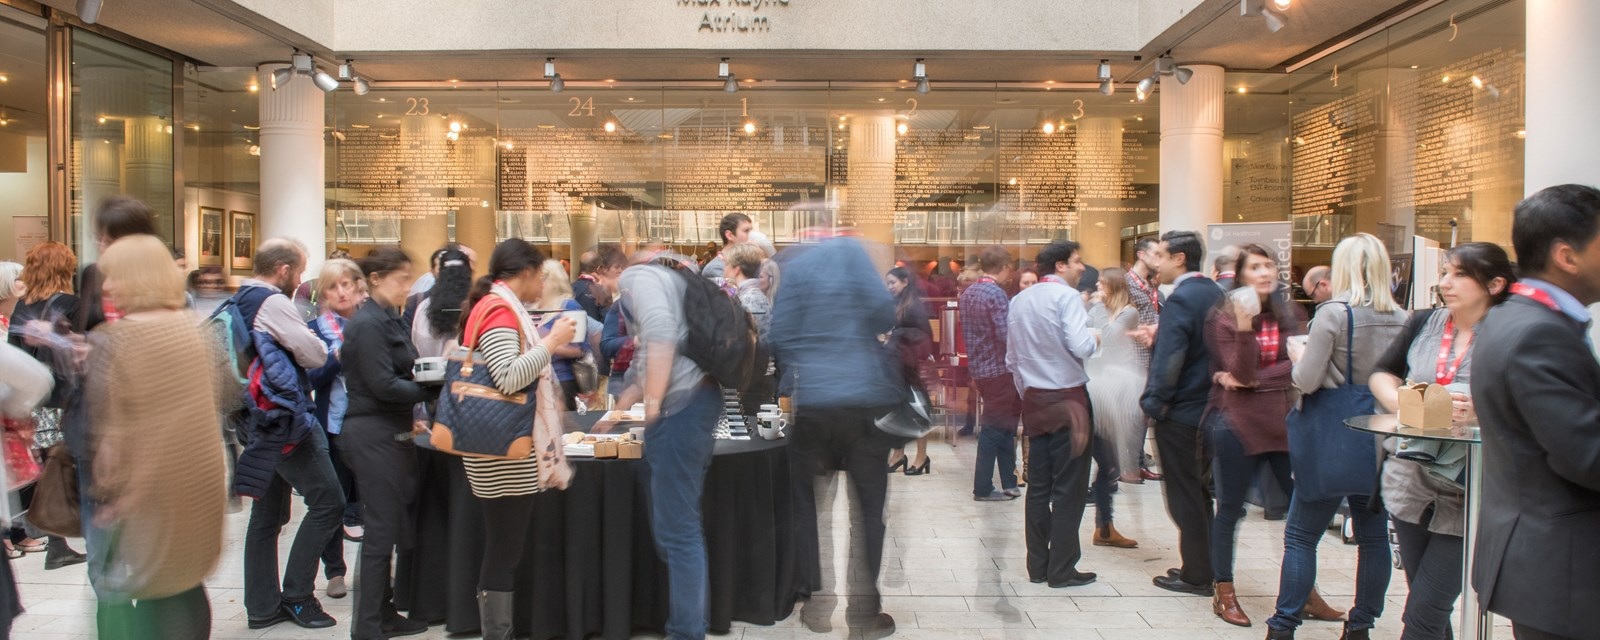 Networking in atrium